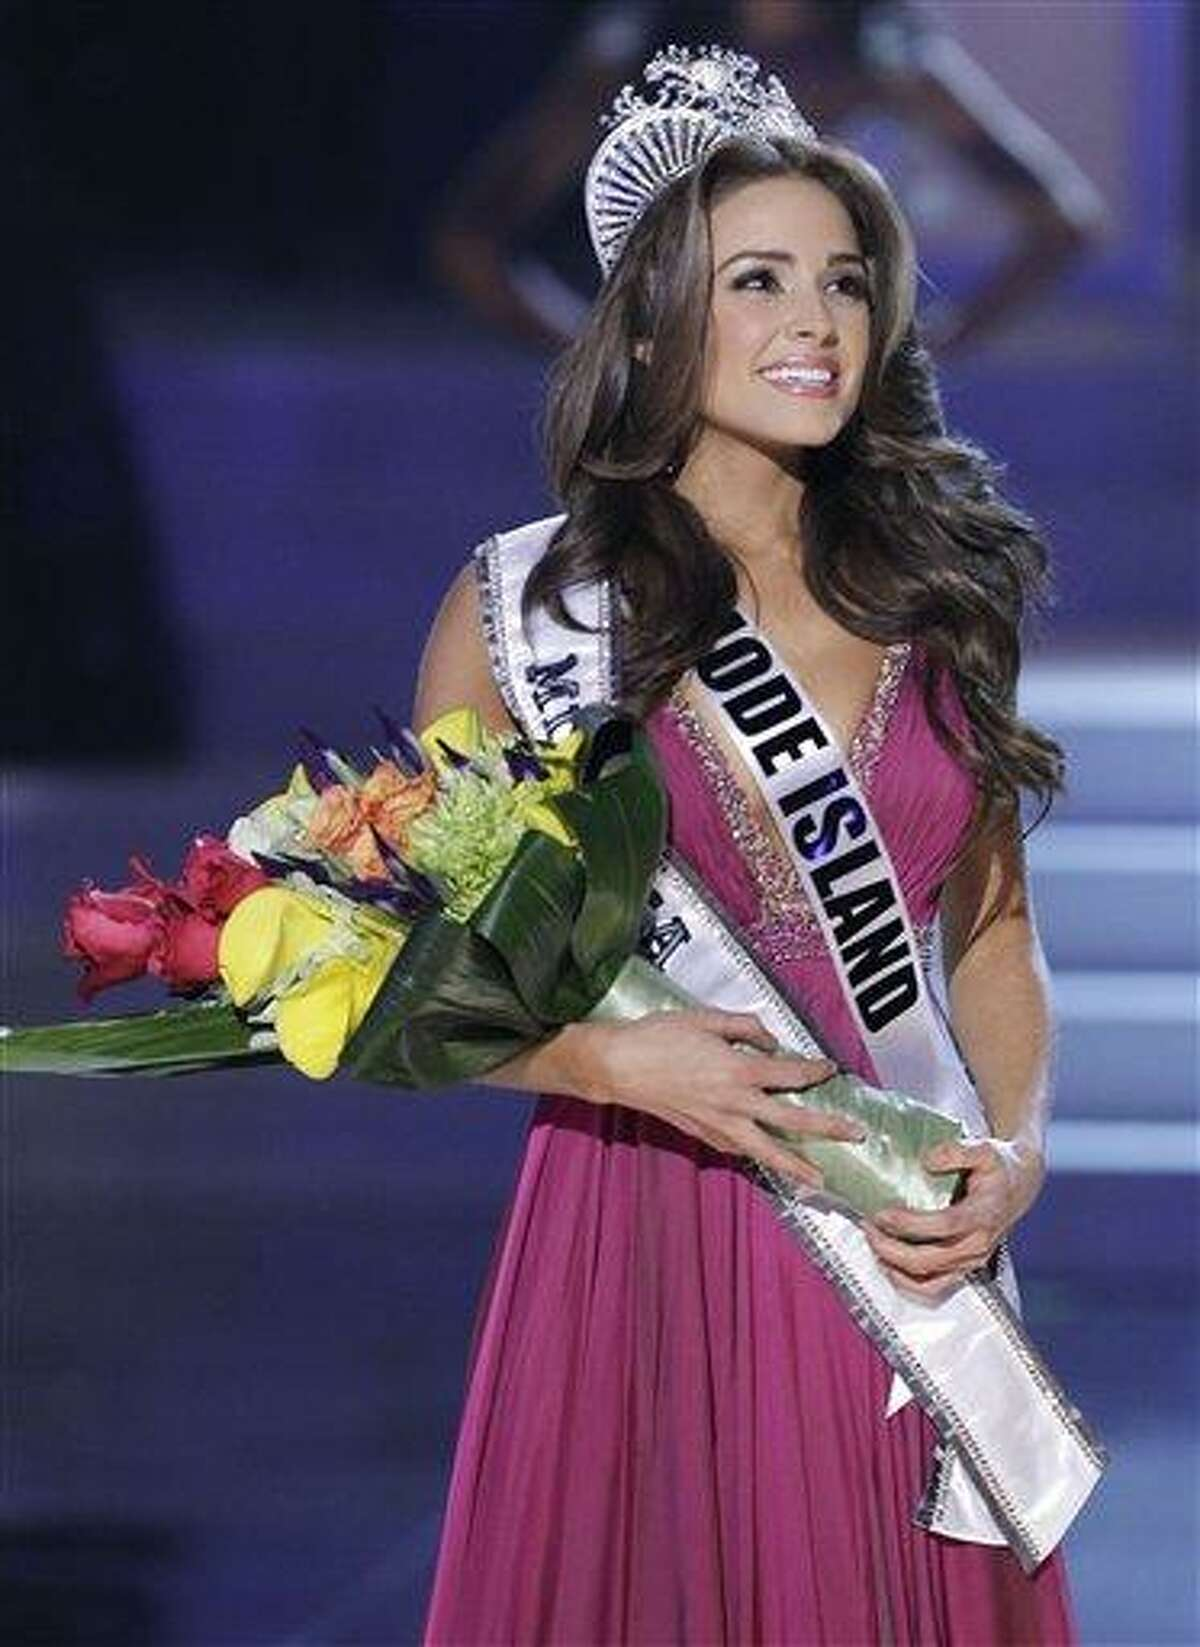 Miss Rhode Island Olivia Culpo looks toward the audience after being crowned Miss USA during the 2012 Miss USA pageant, Sunday, June 3, 2012, in Las Vegas.